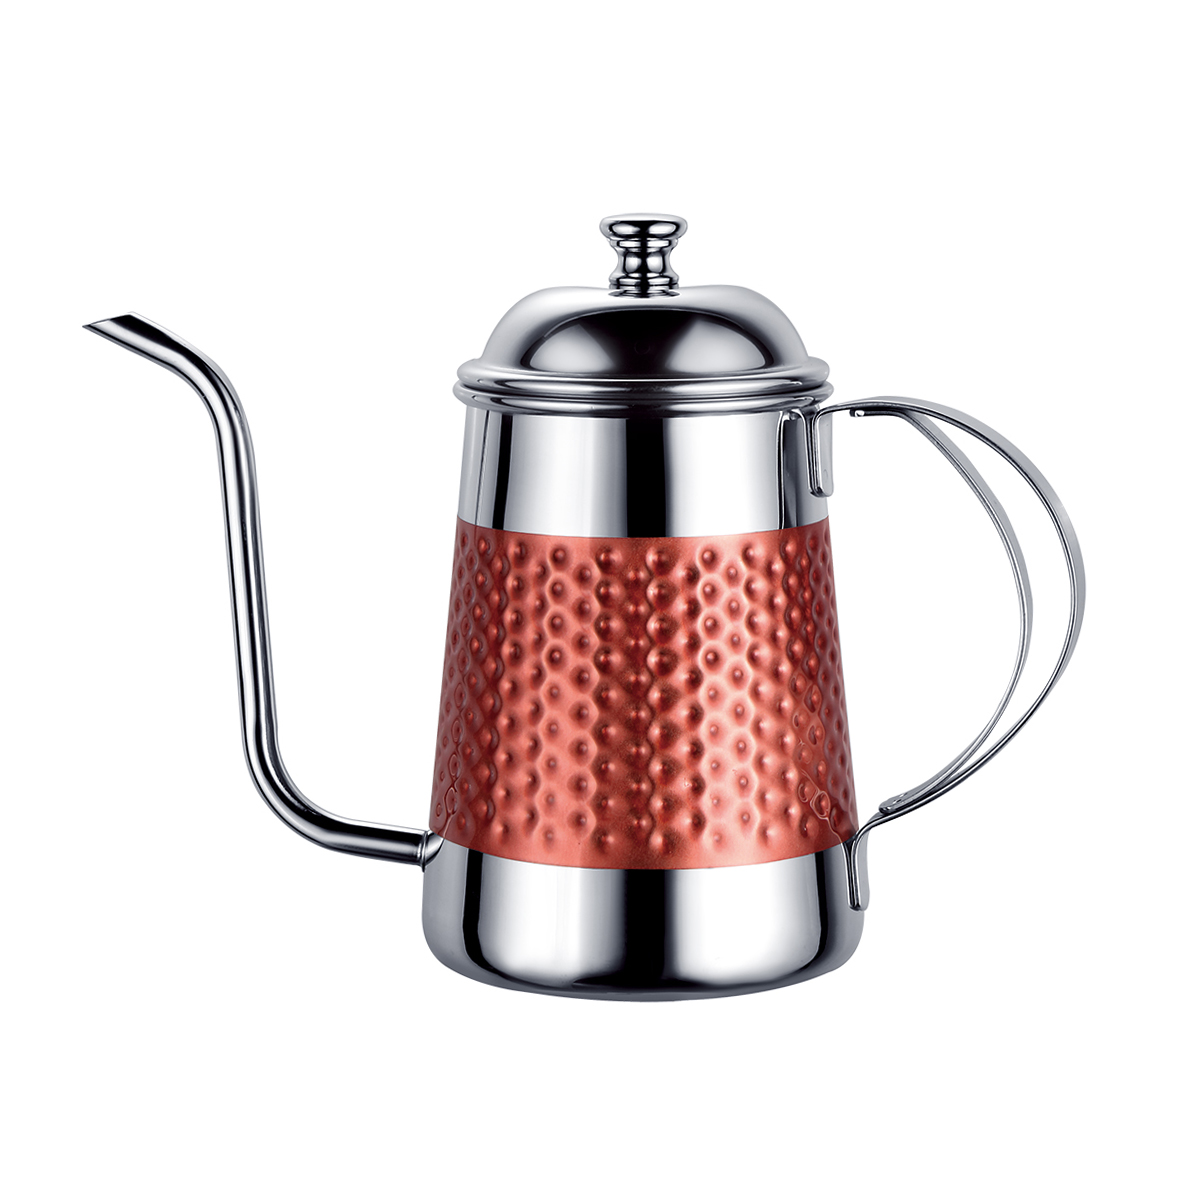 New Design 304 Stainless Steel Gooseneck Pour Over Drip Coffee Kettle